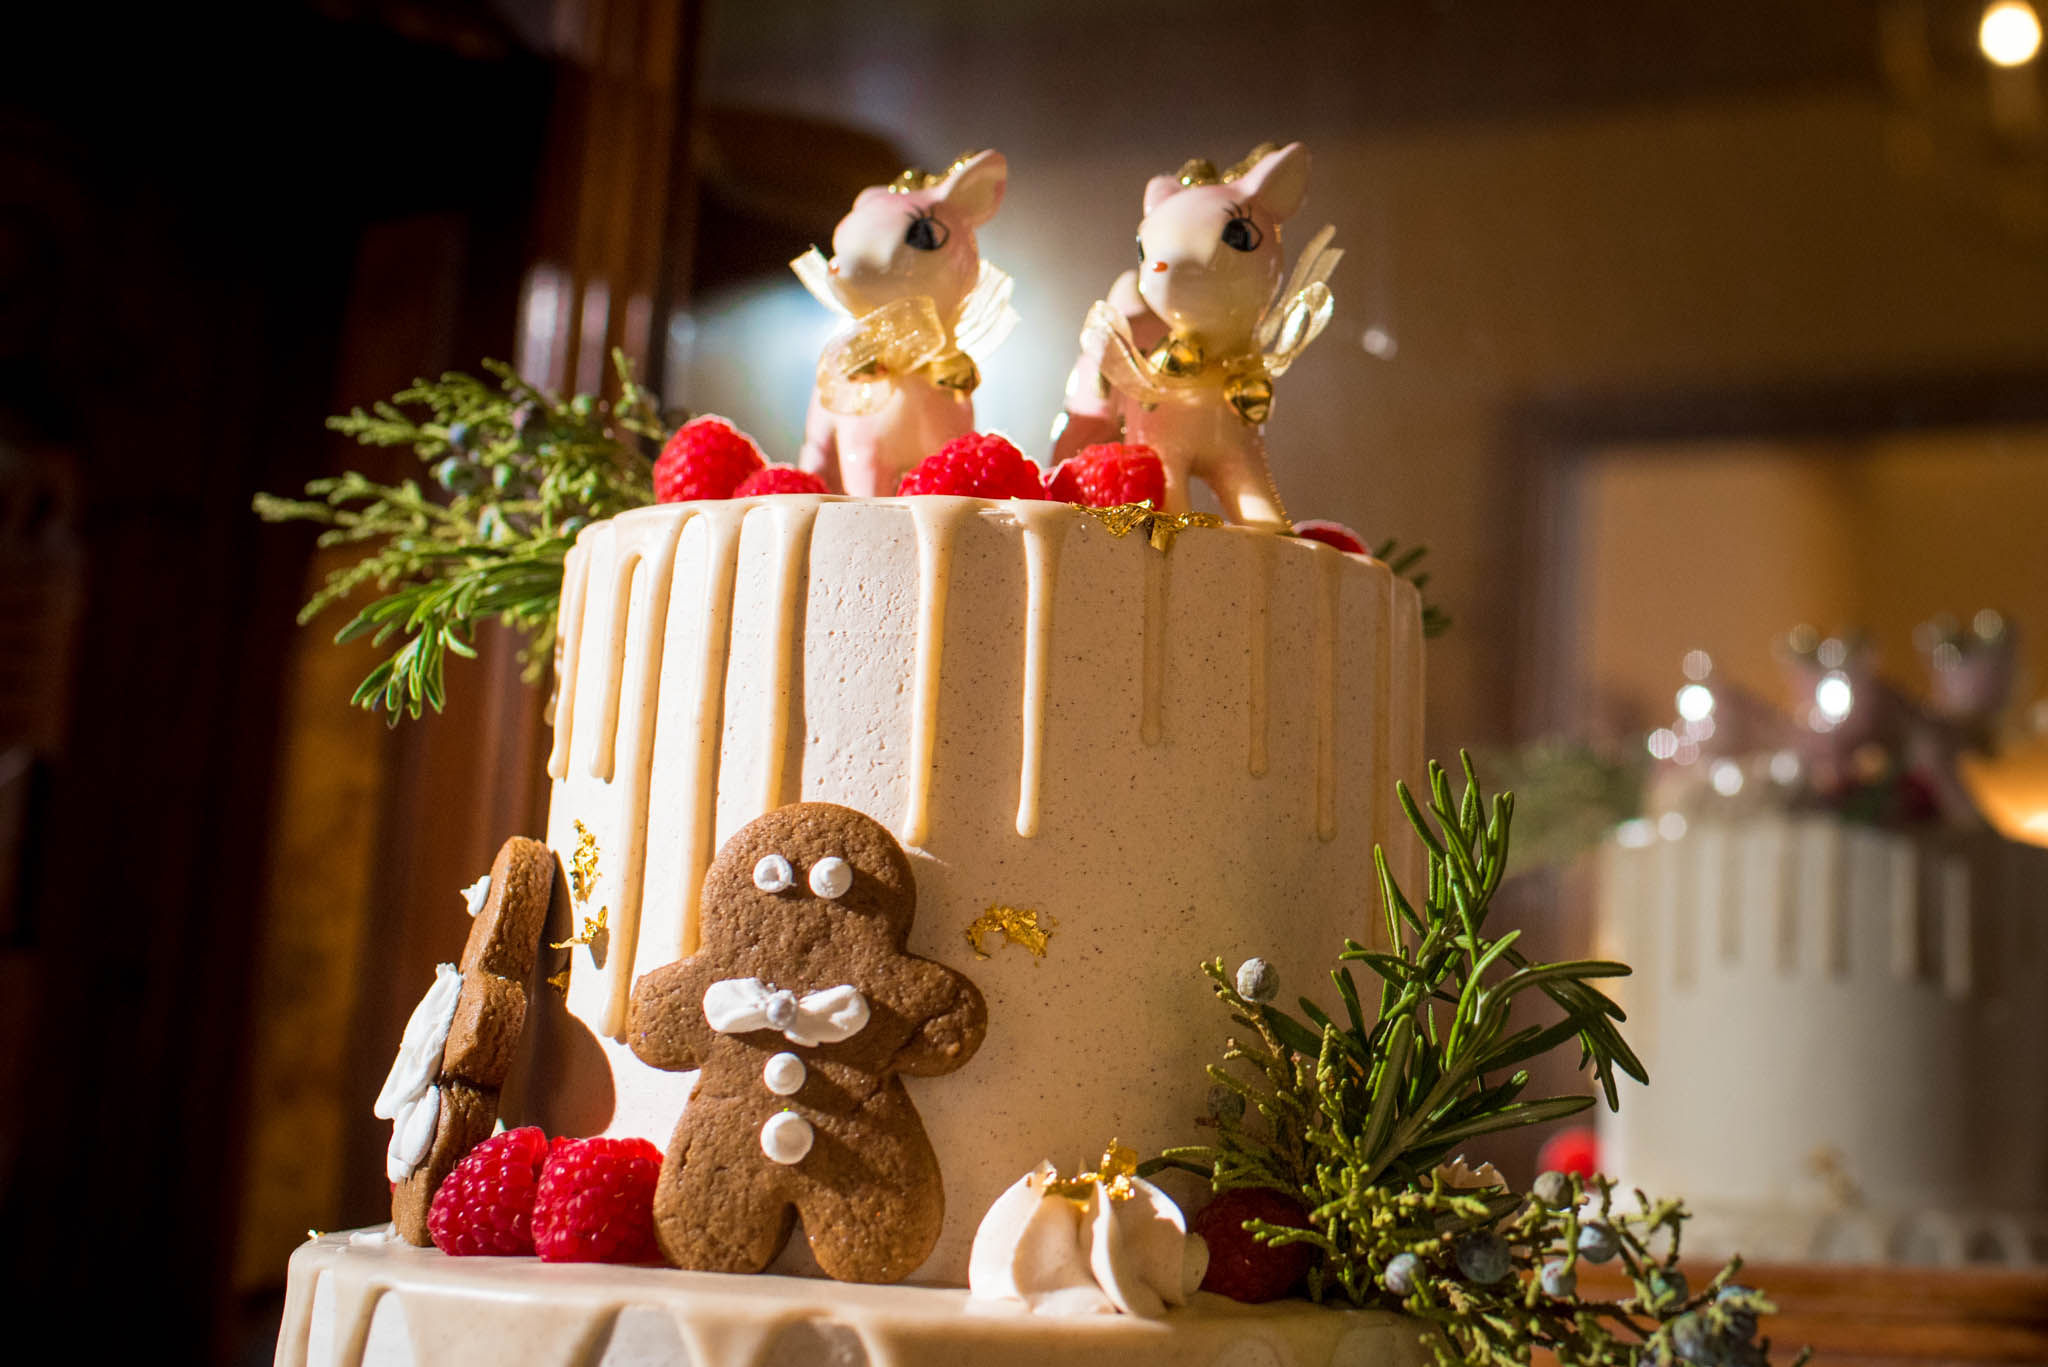 Christmas themed wedding cake with reindeer decorations